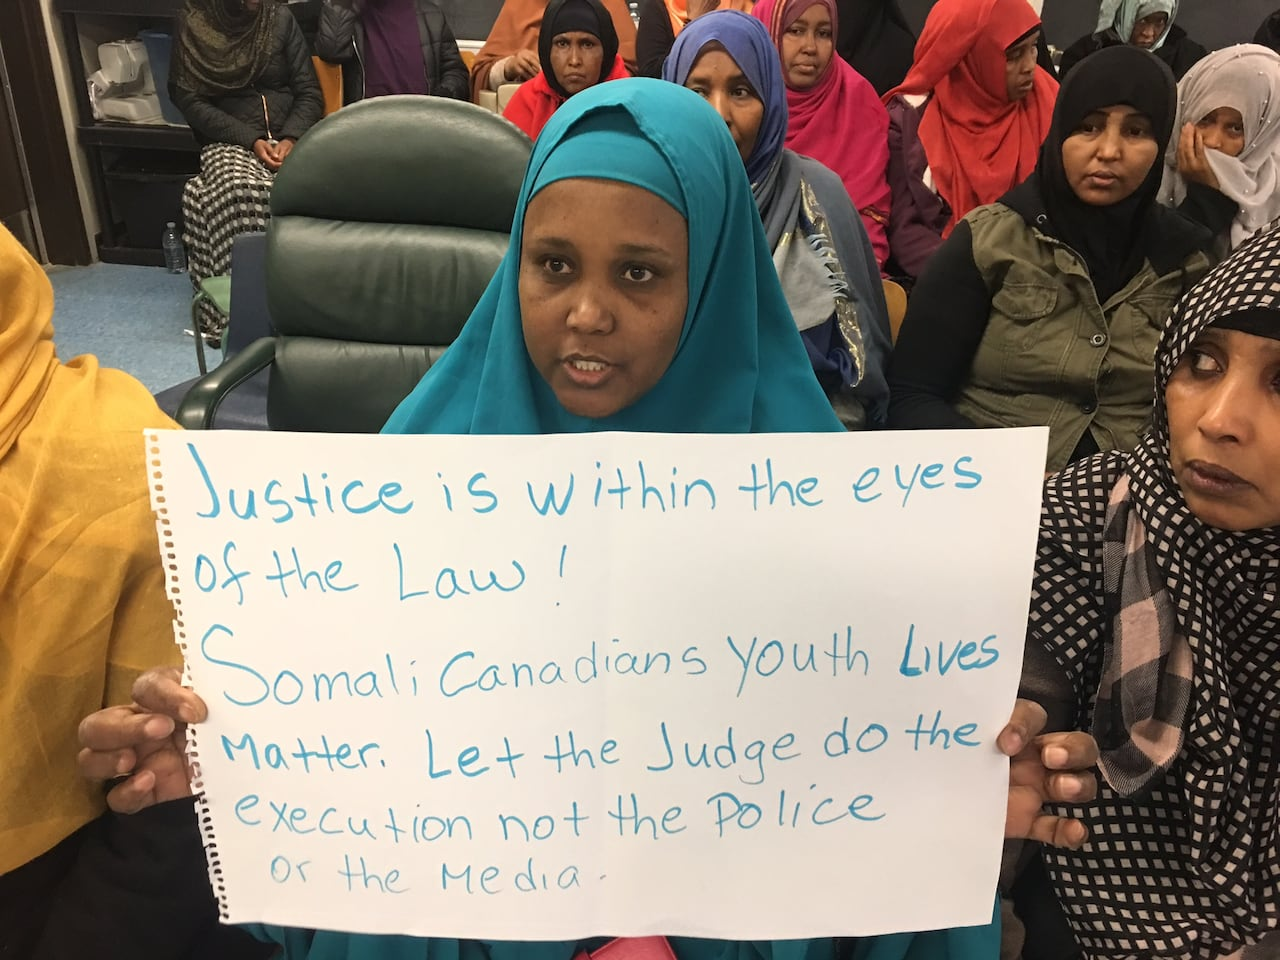 We bury a lot of youth': Somali-Canadian community cries out